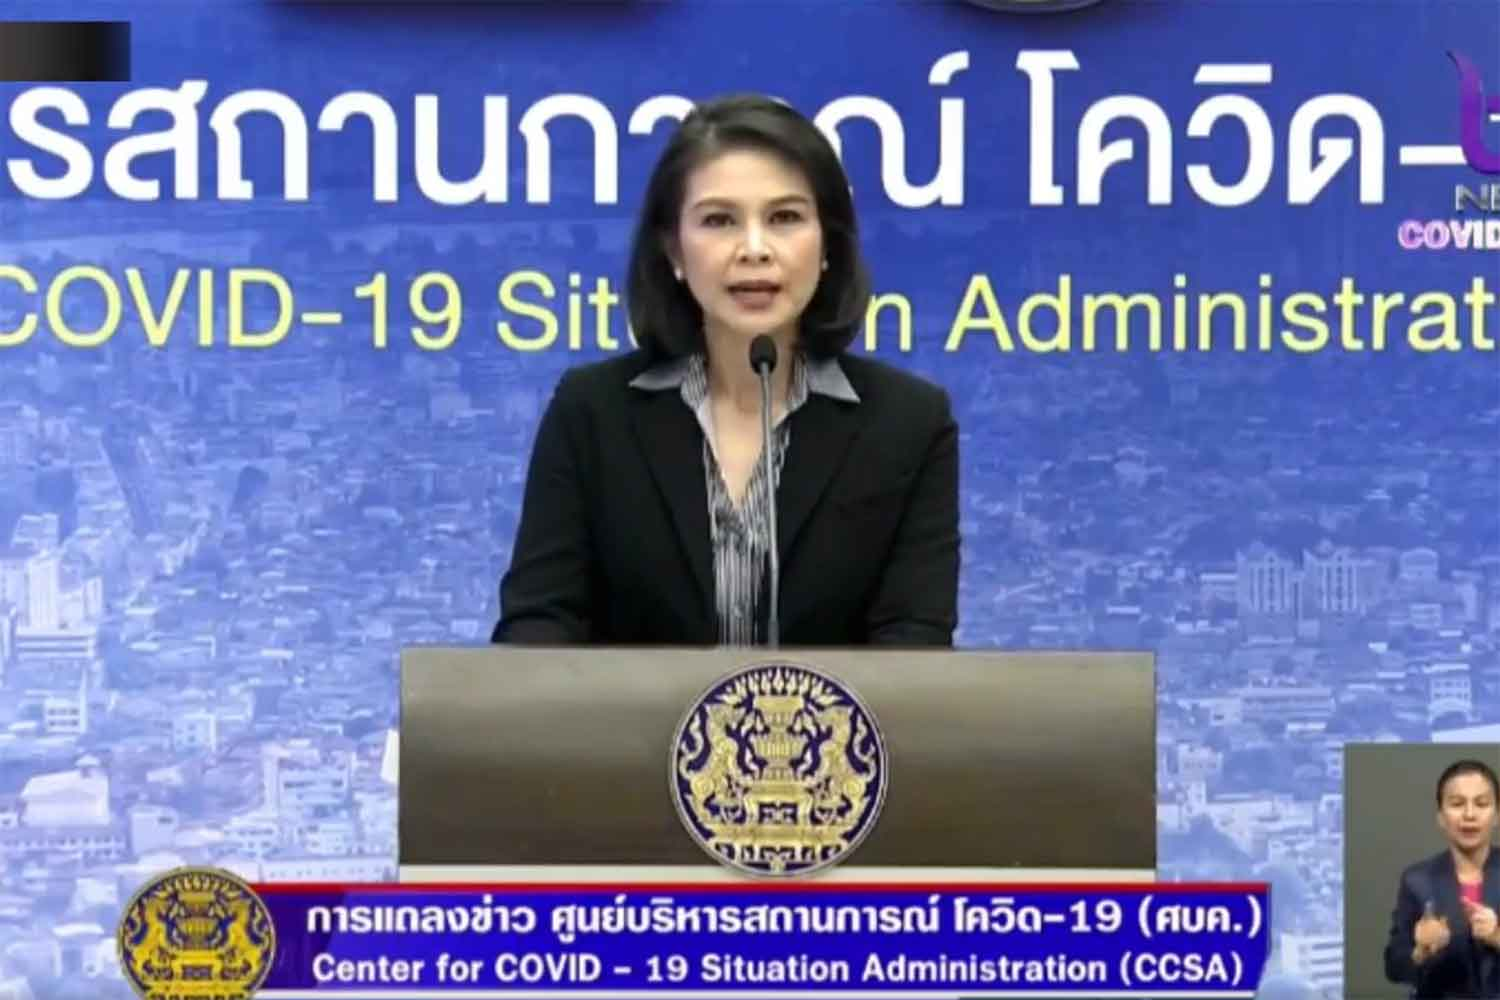 Apisamai Srirangson, assistant spokesperson of the Centre for Covid-19 Situation Administration, elaborates on two new Covid-19 cases in Bangkok, students who played futsal in Samut Sakhon province, at Government House on Thursday. (Screenshot)